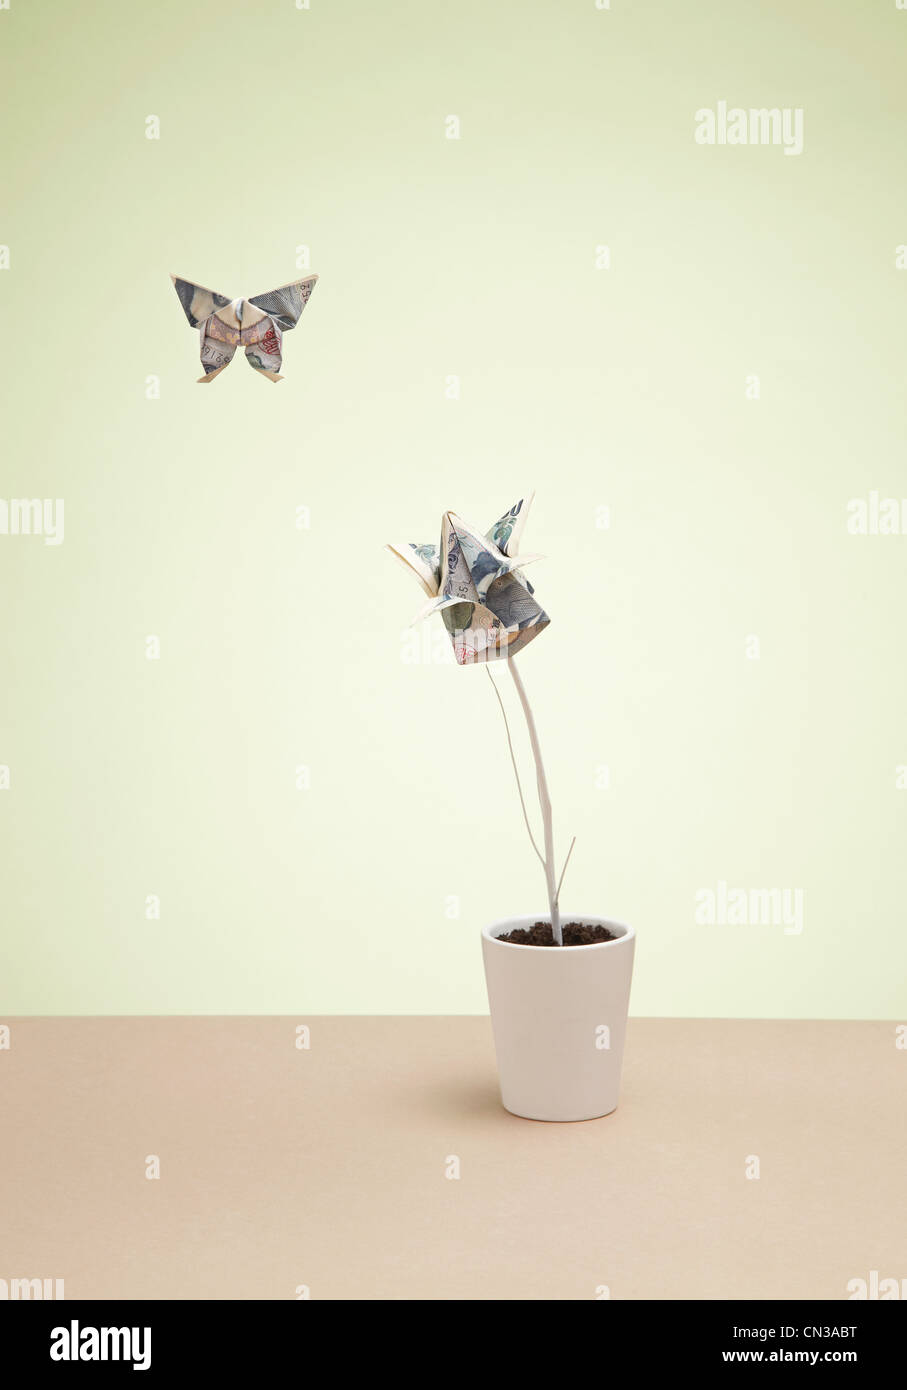 Origami butterfly and yen banknote in plant pot - Stock Image